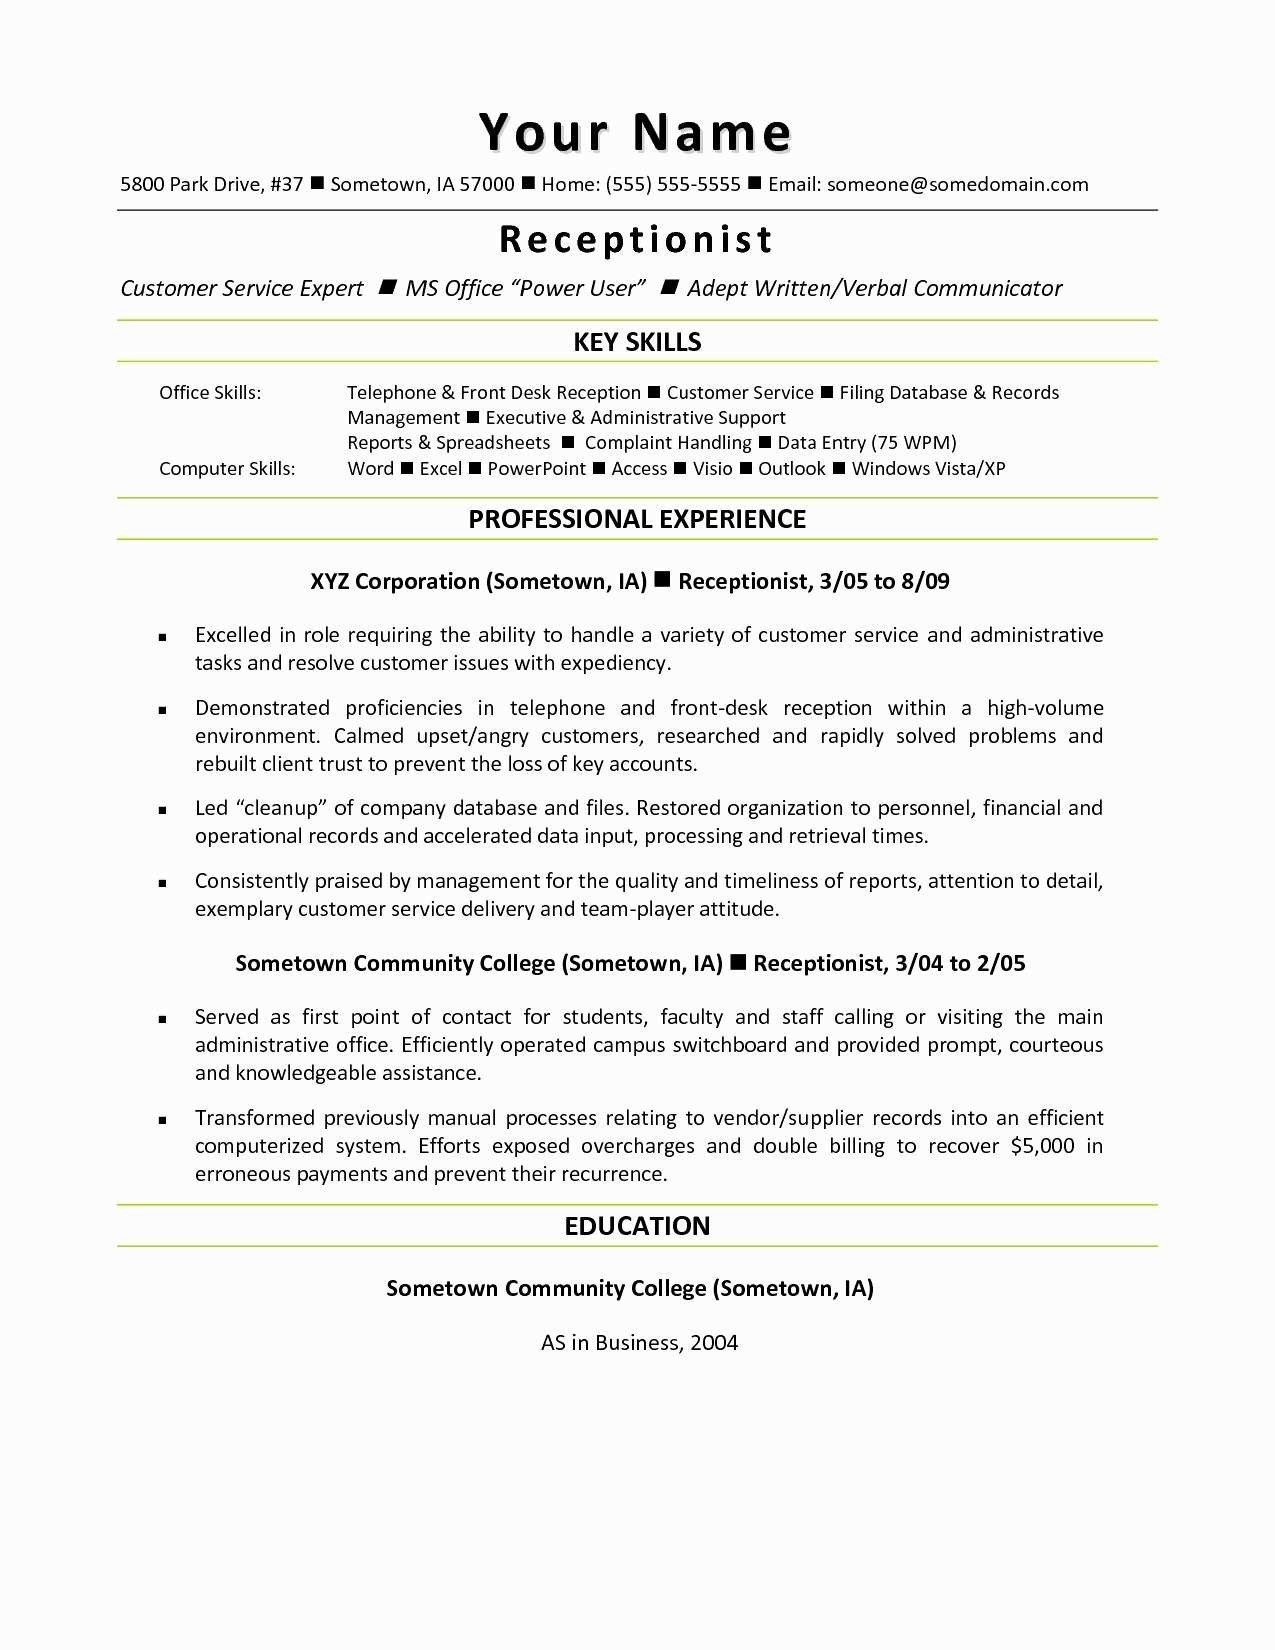 School Counselor Resume - 16 School Counselor Resume